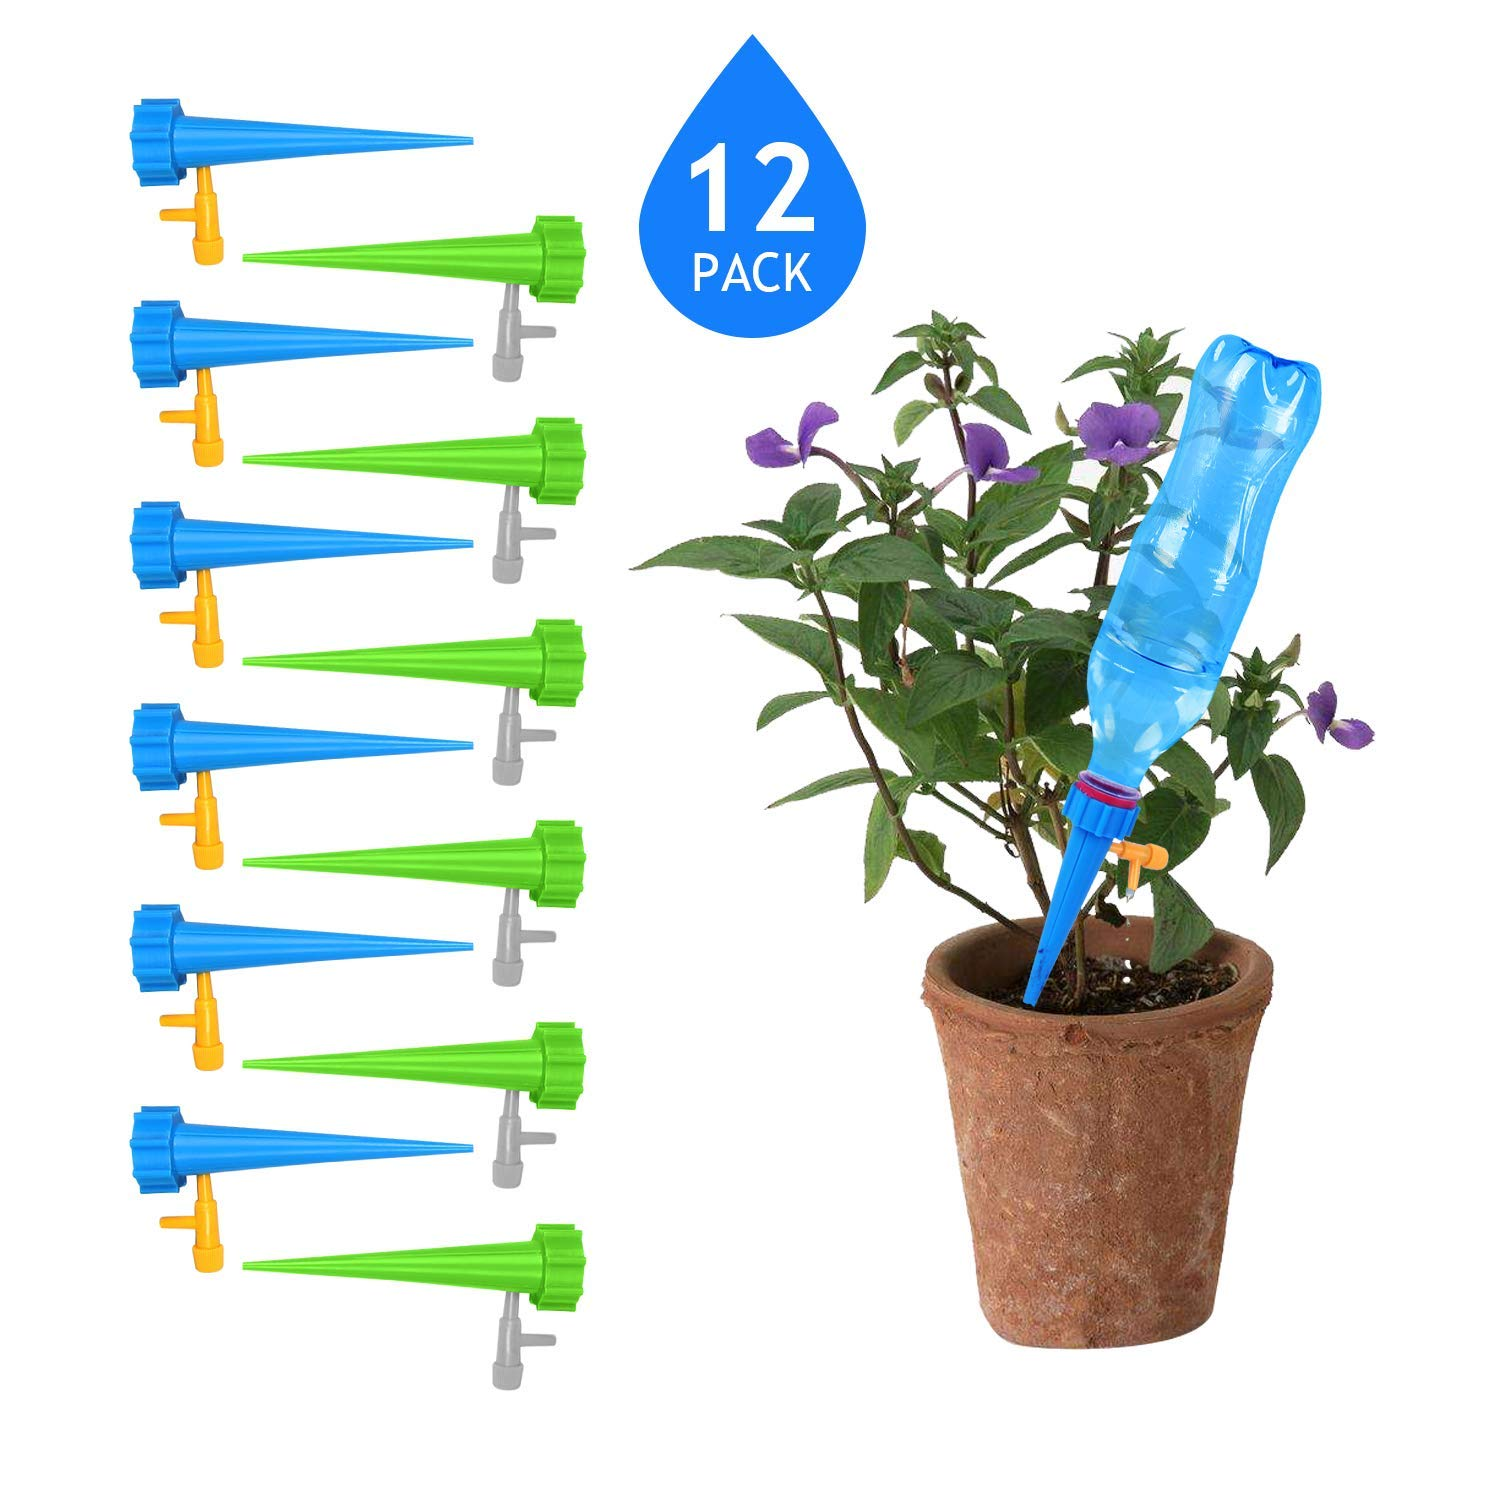 BaikoubaoweiLr Plant Watering Devices with Slow Release Control Valve Switch Automatic Watering Devices Plant Self Watering Spike System Care Your Indoor & Outdoor Home Office Plants-12 PCS